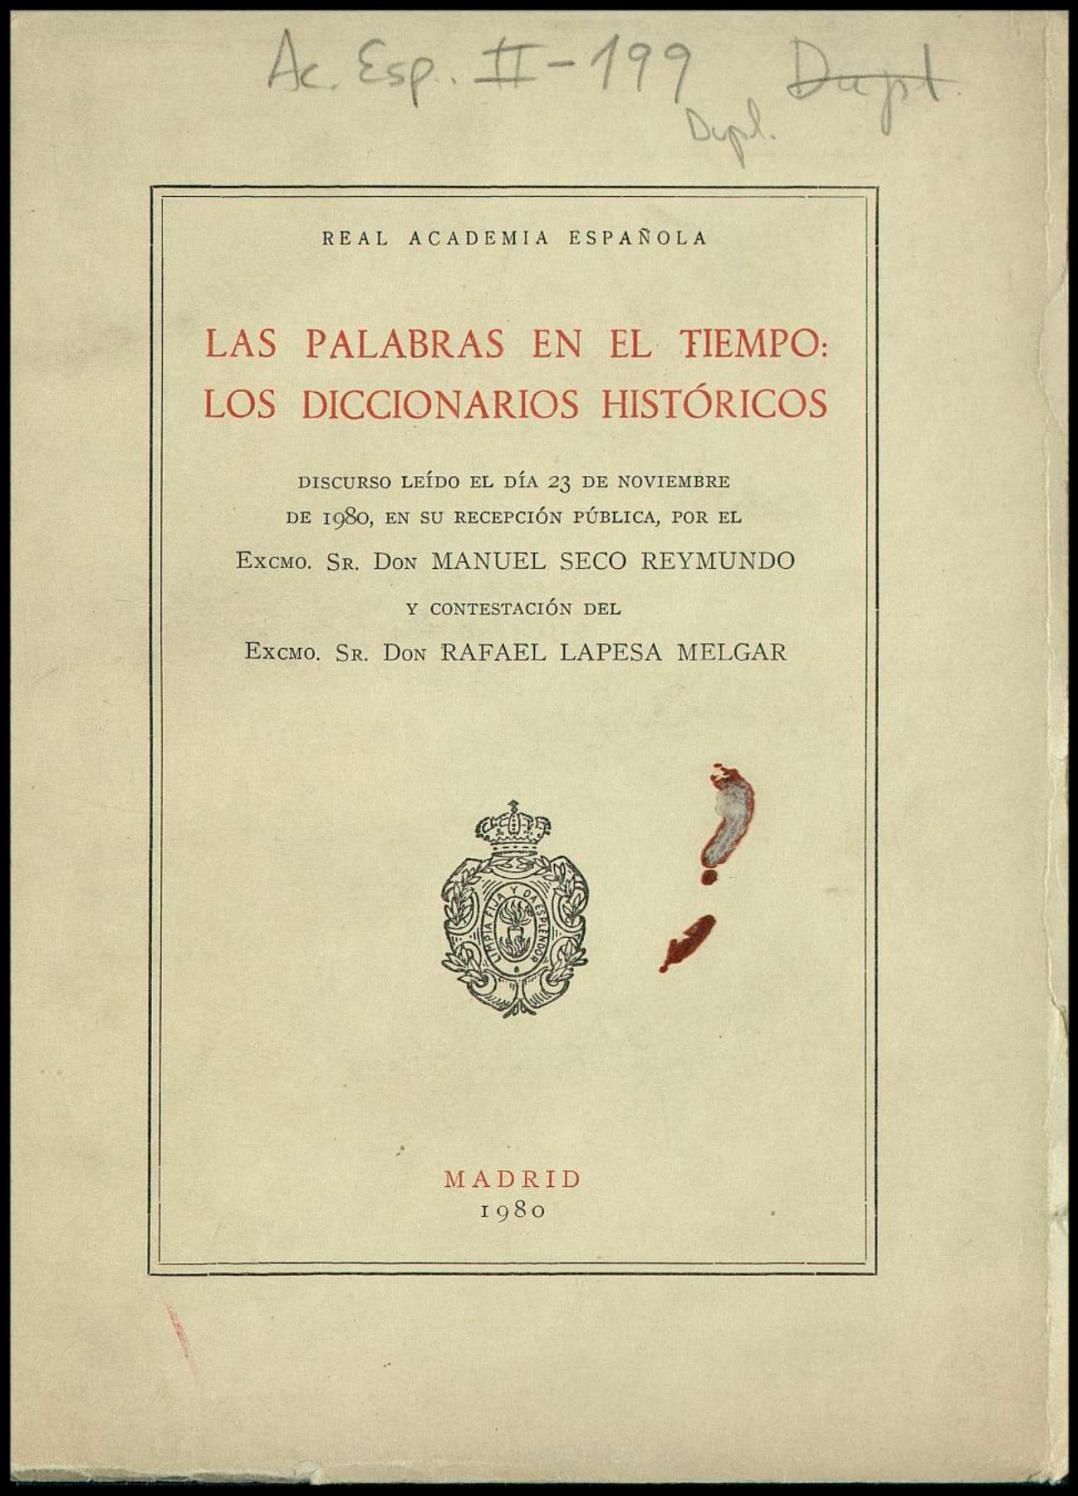 Discurso ingreso manuel seco by Guillermo Hernández O. - issuu